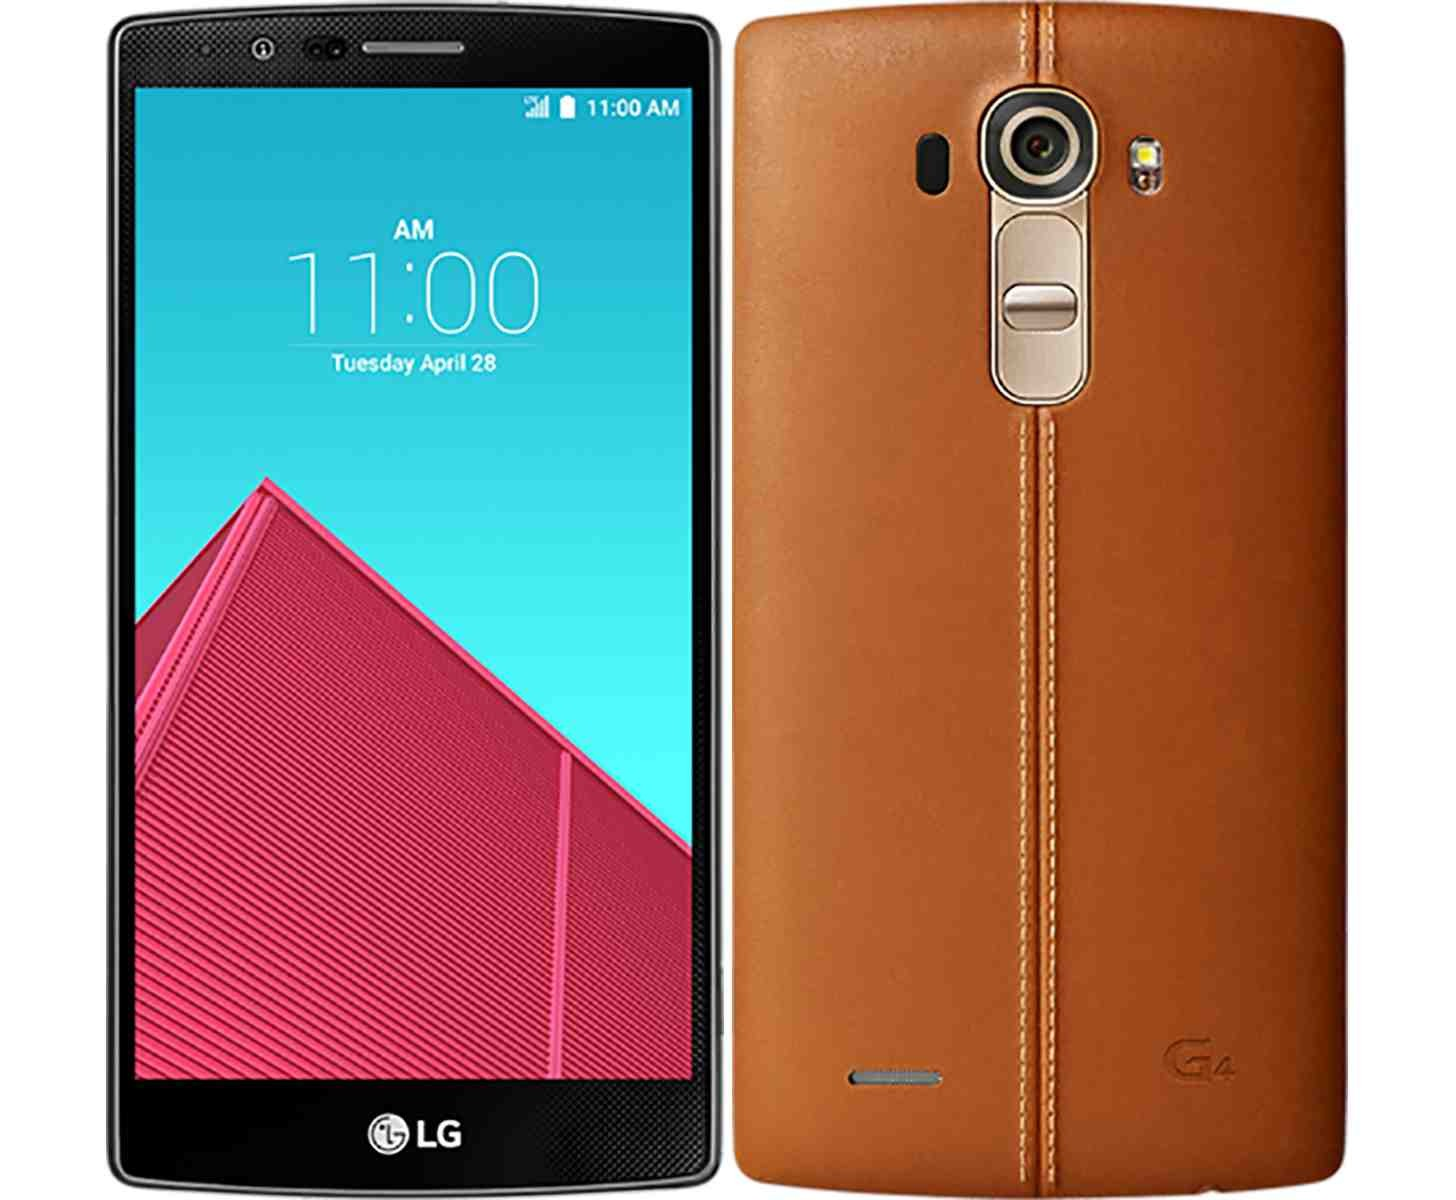 LG G4 Gets Exposed With Arched Leatherback